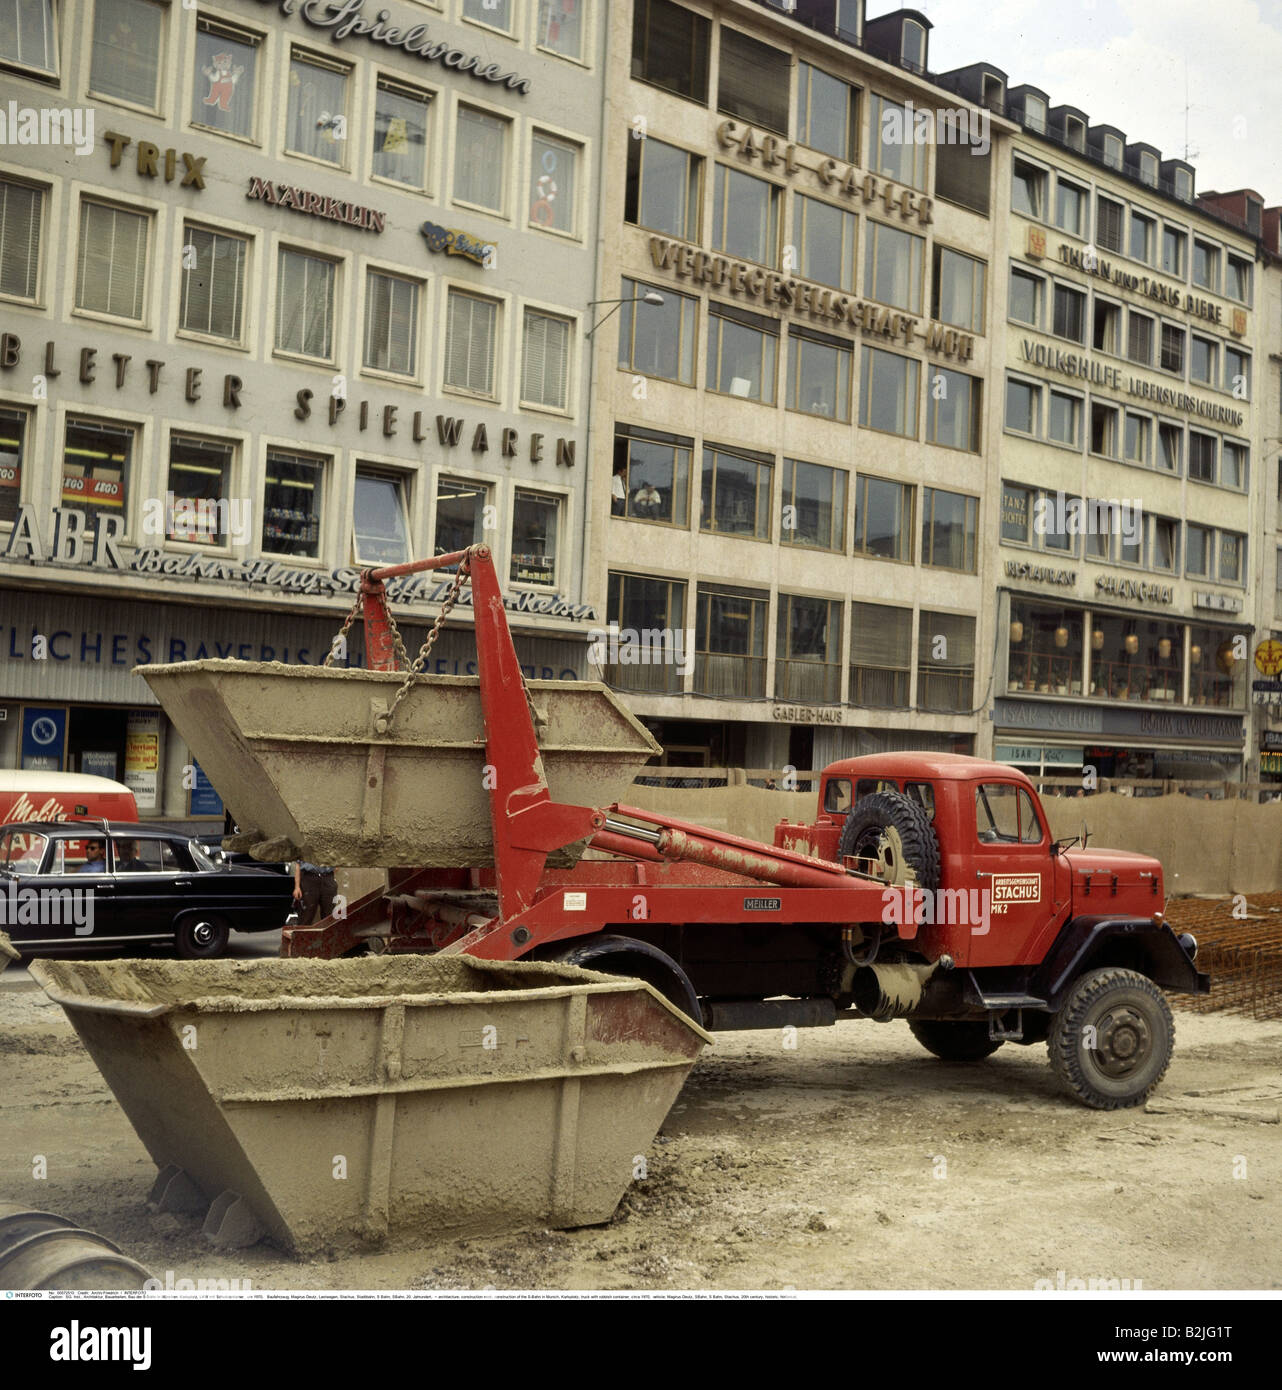 architecture, construction work, construction of the S-Bahn in Munich, Karlsplatz, truck with rubbish container, Stock Photo